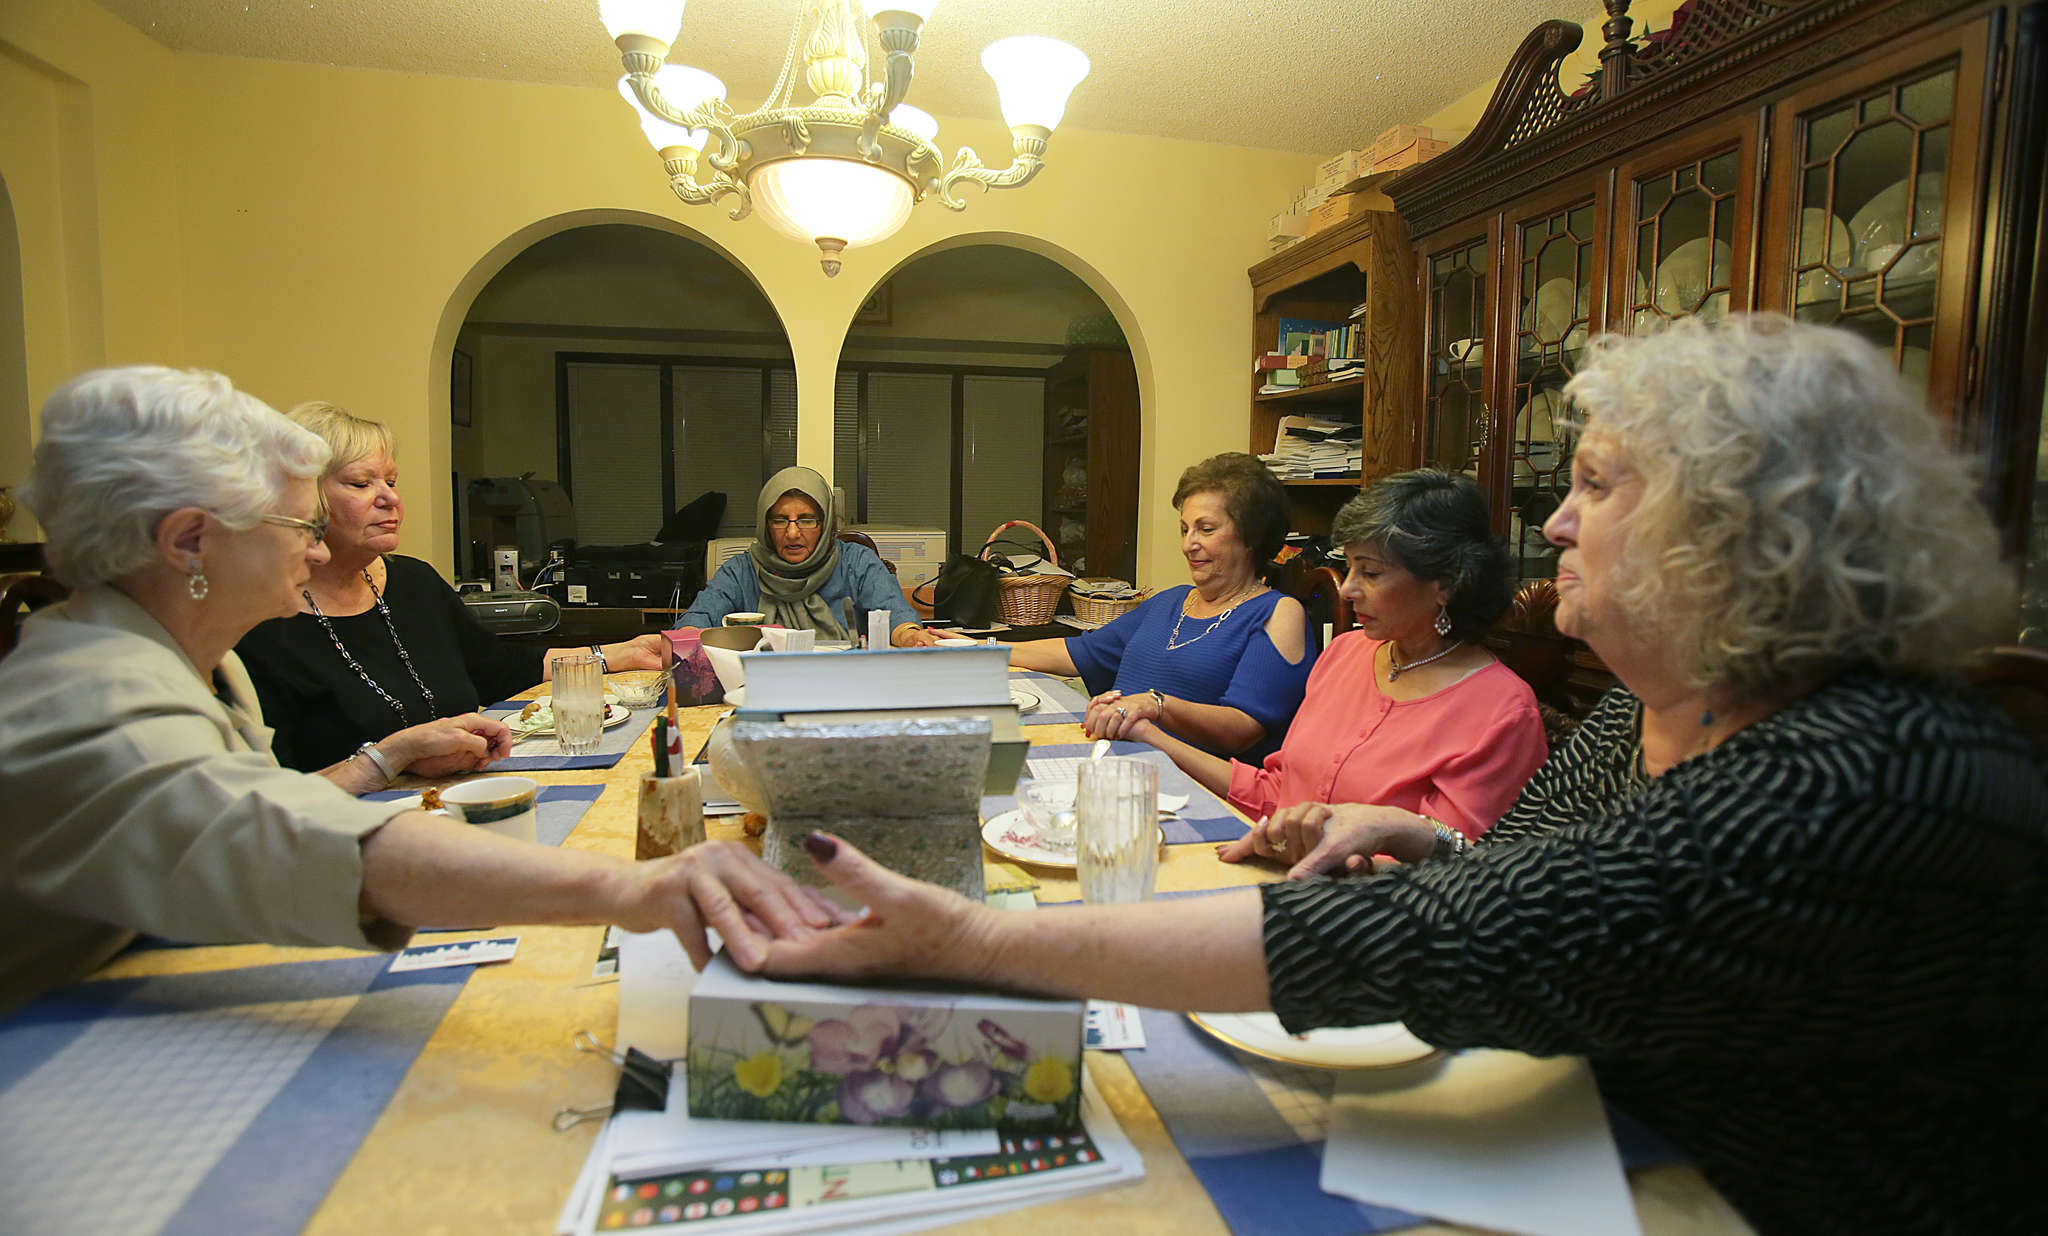 The Soul Sisters pray at the start of a meeting. The group began meeting in September 2011. The six members are (from left) Jane Kopas, who is Catholic; Pat Sandrow, who is Catholic; Zahida Rahman, who is Muslim; Harriet Schulman, who is Jewish; Farhat Biviji, who is Muslim; and Charlene Fenster, who is Jewish.